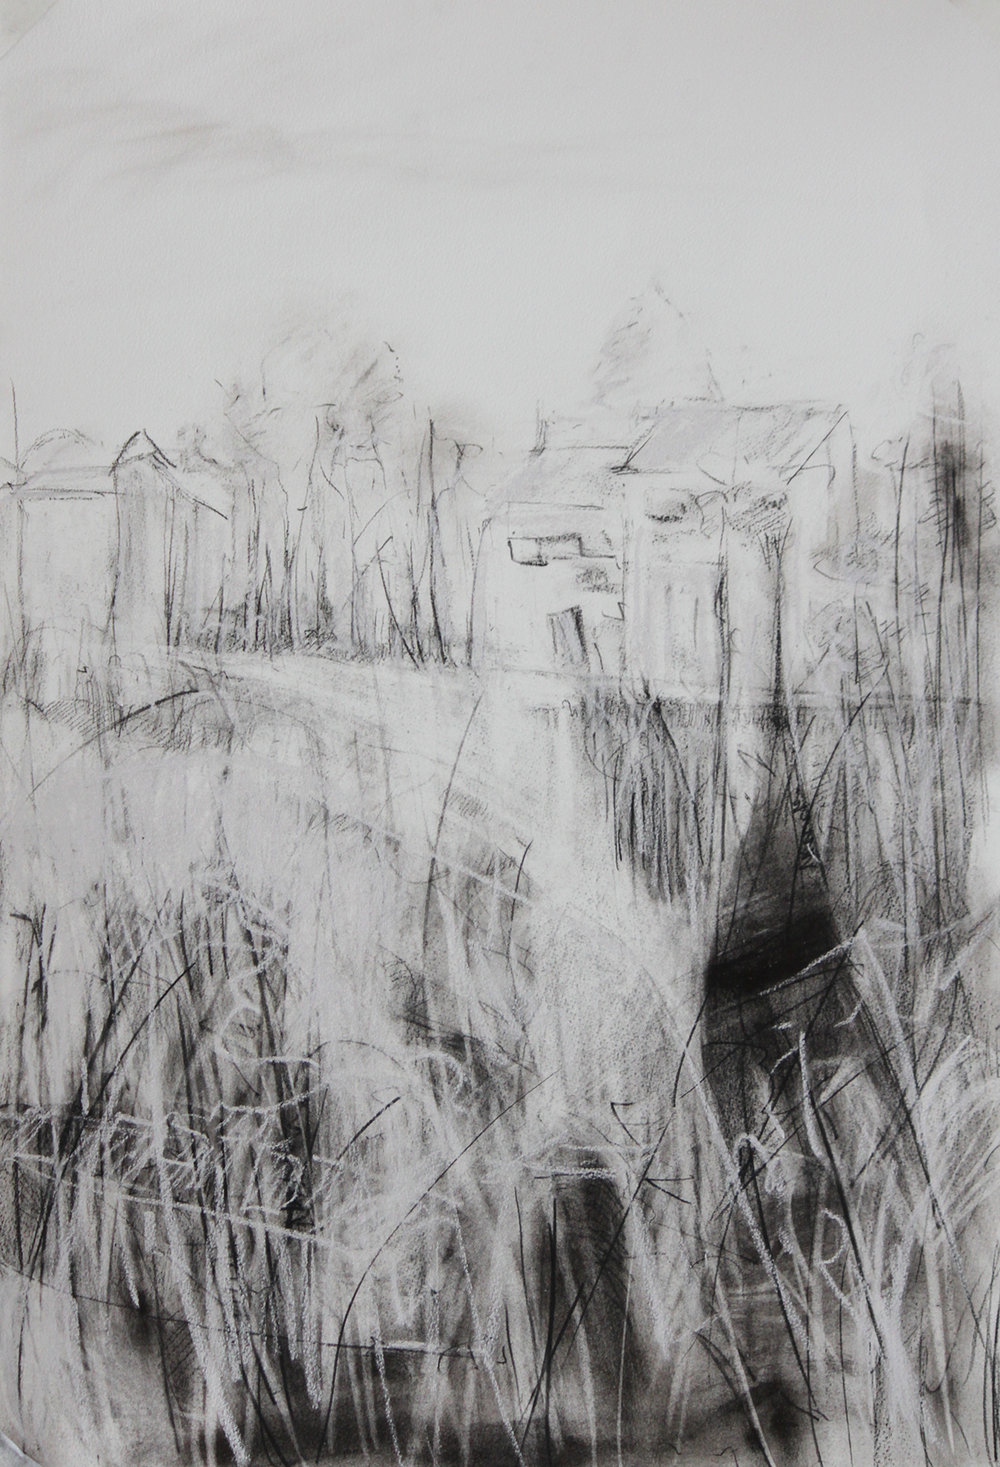 TITLE:  Bleak edge of winter 2  MEDIUM: Charcoal, graphite, on paper DIMENSIONS: H76 x W53cm